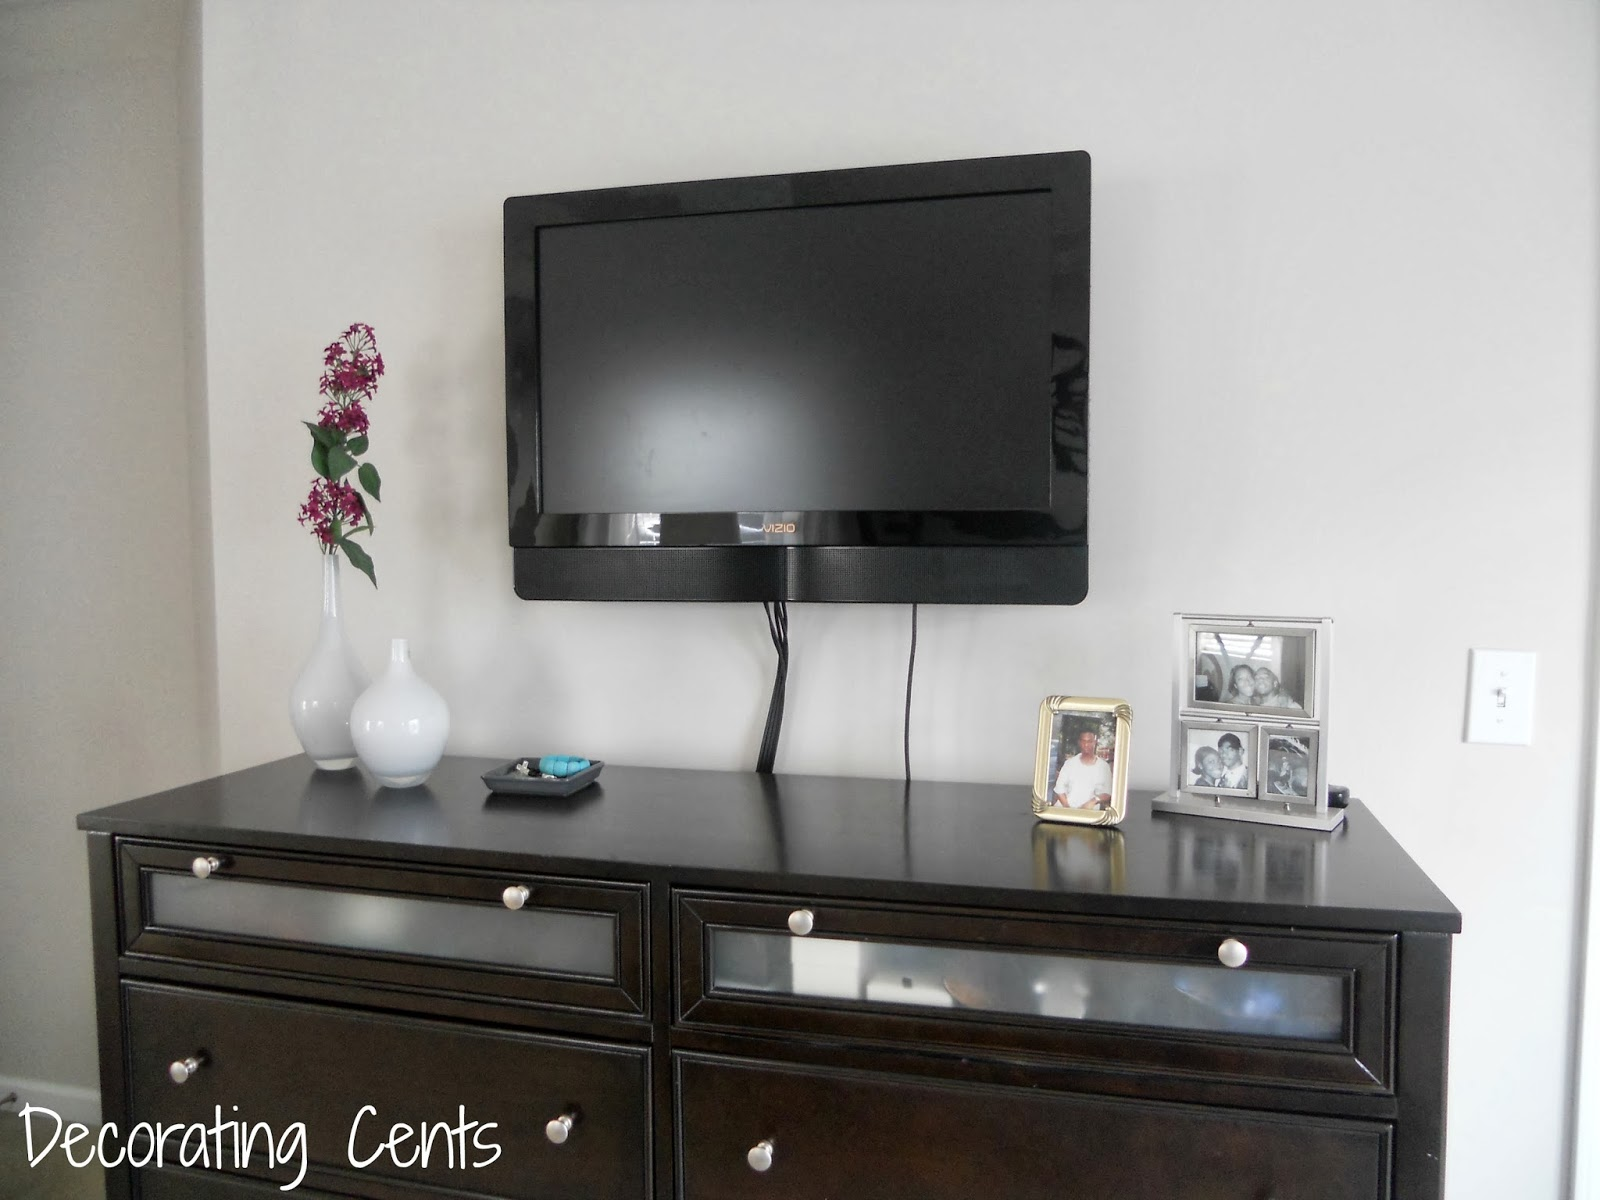 Modern living room wall mount tv design ideas zion star - Hanging tv on wall ideas ...